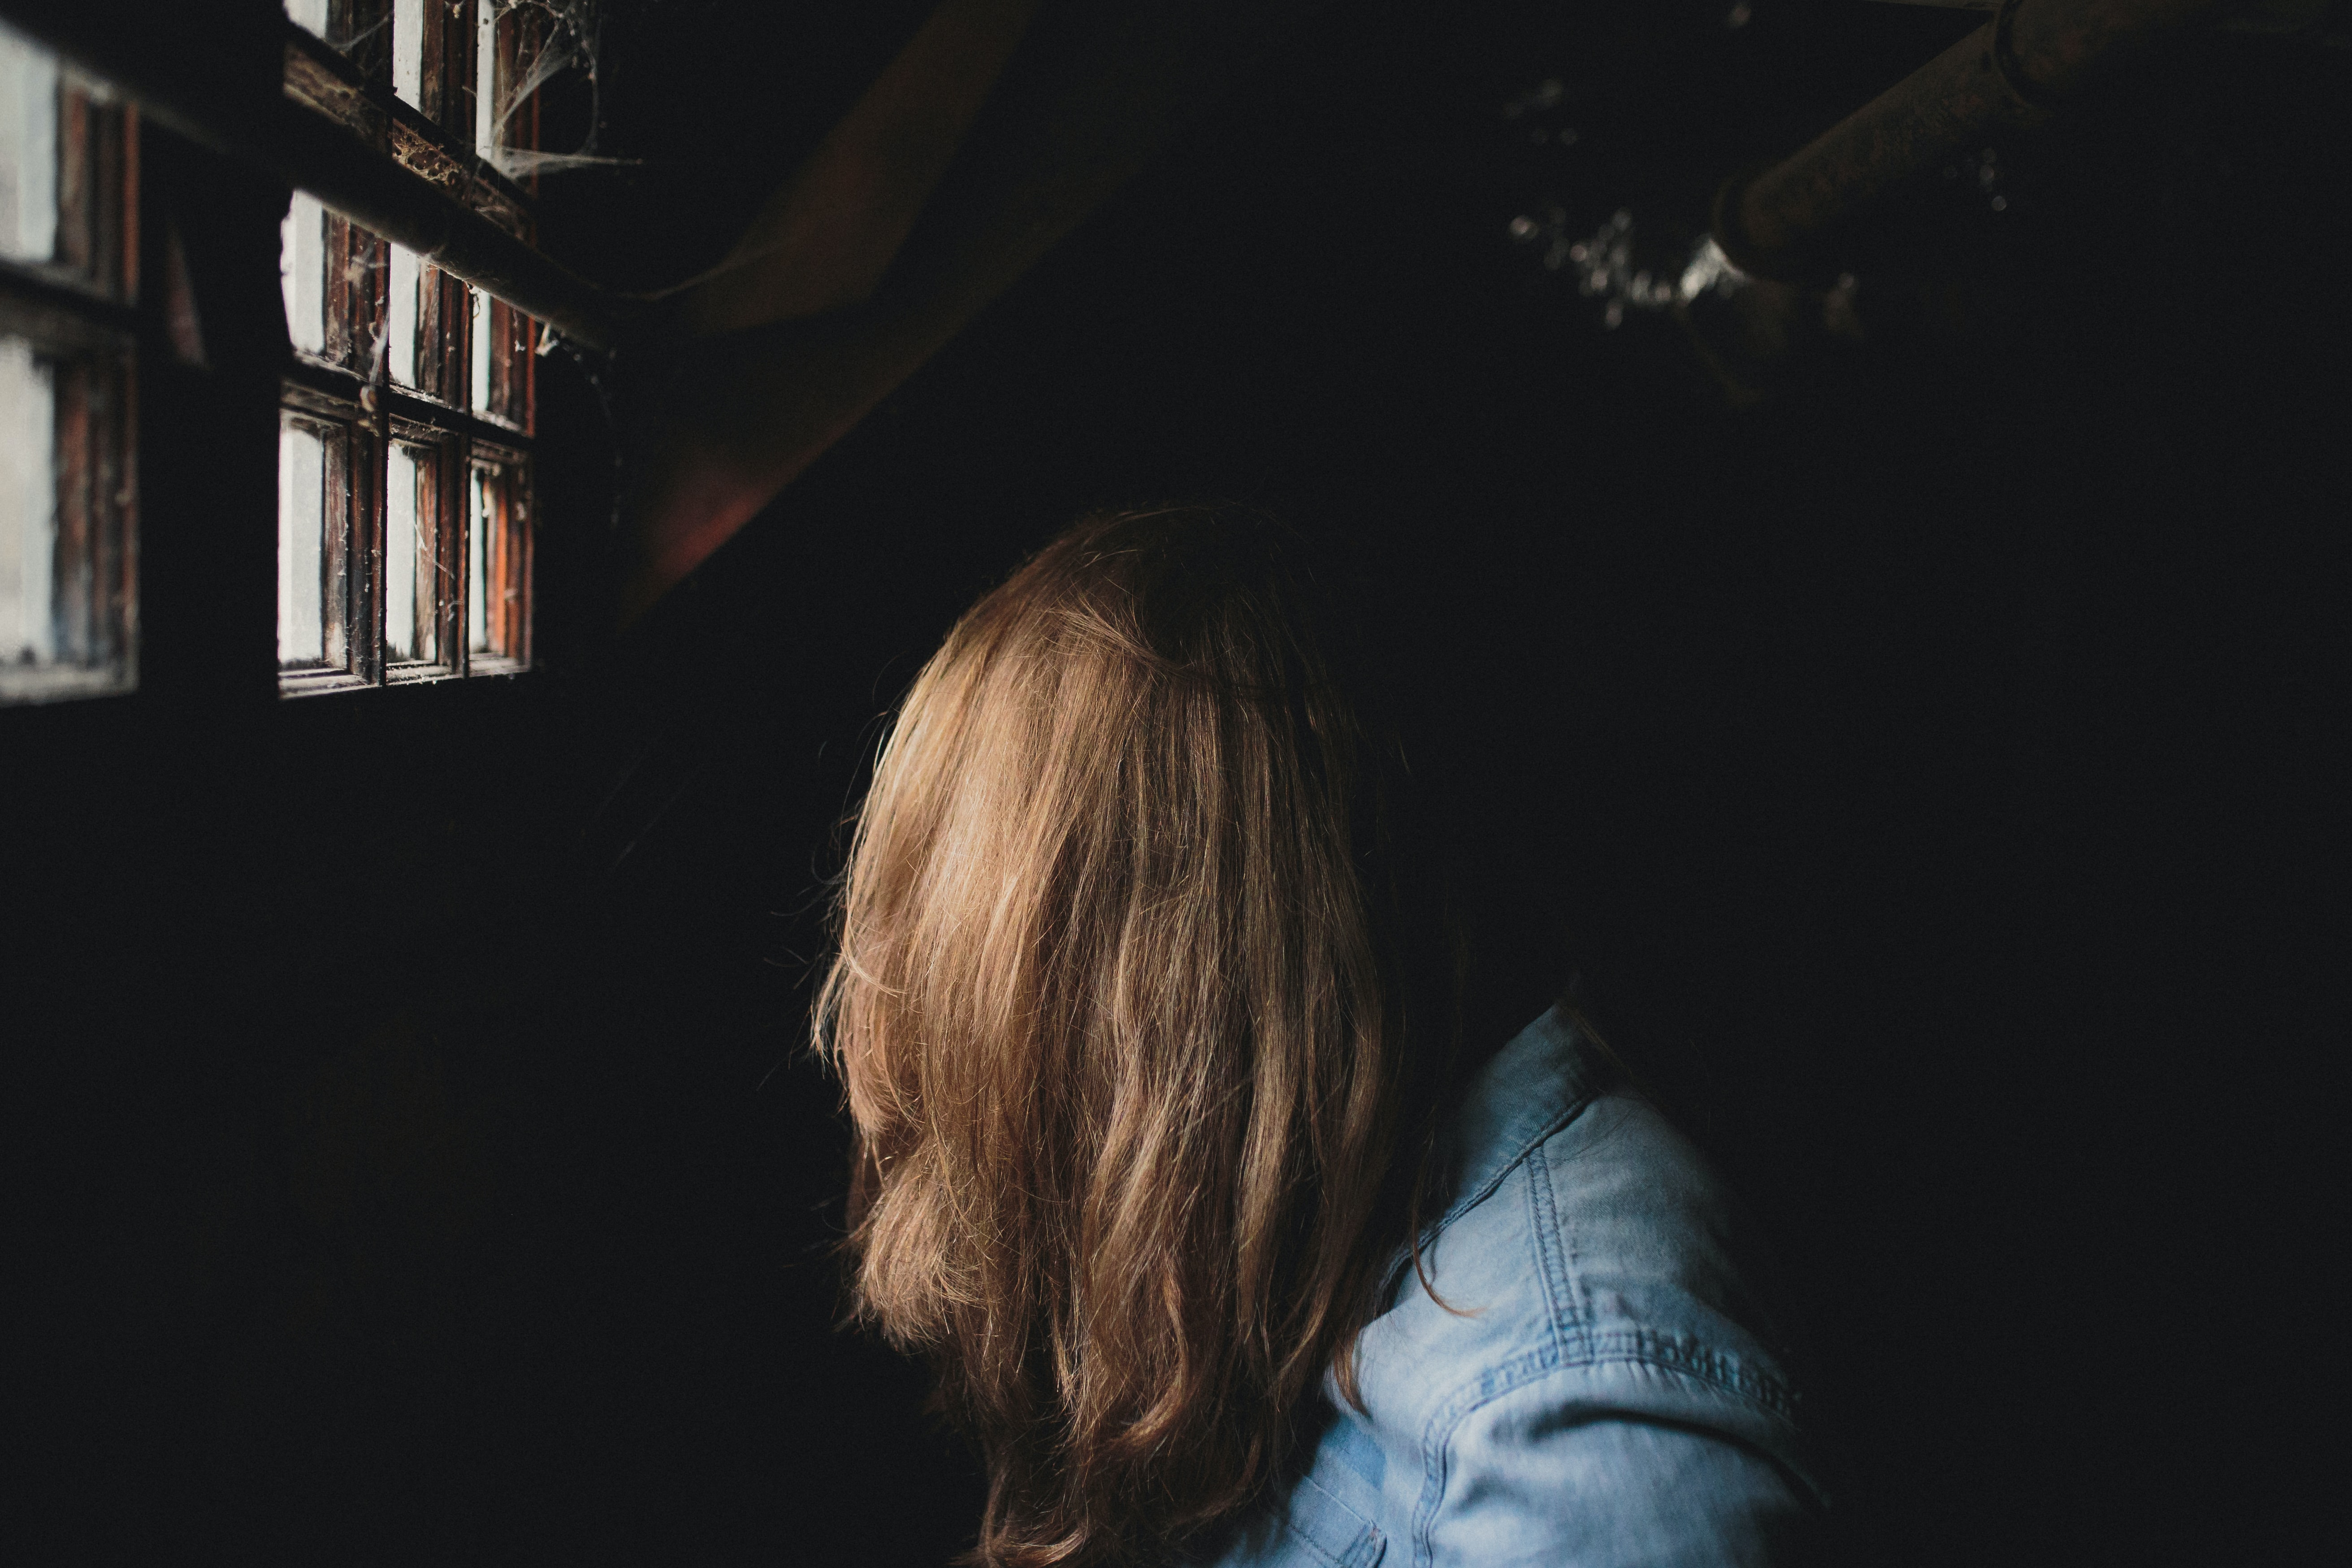 A female sitting sideways in a denim jacket has long blonde hair obscuring her face